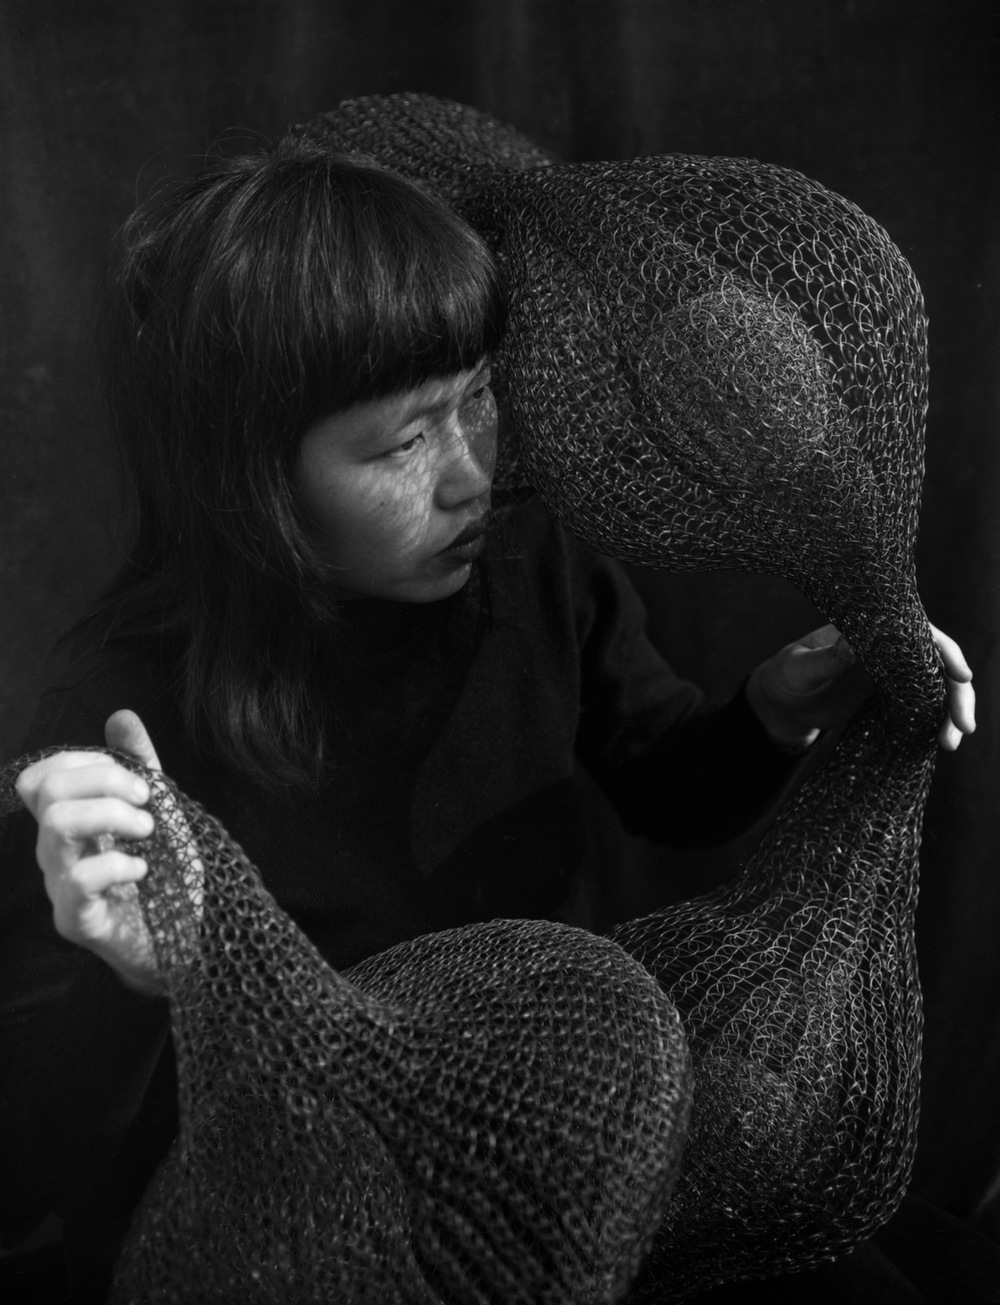 Shared_Ruth Asawa_b_1_hanging work.jpeg